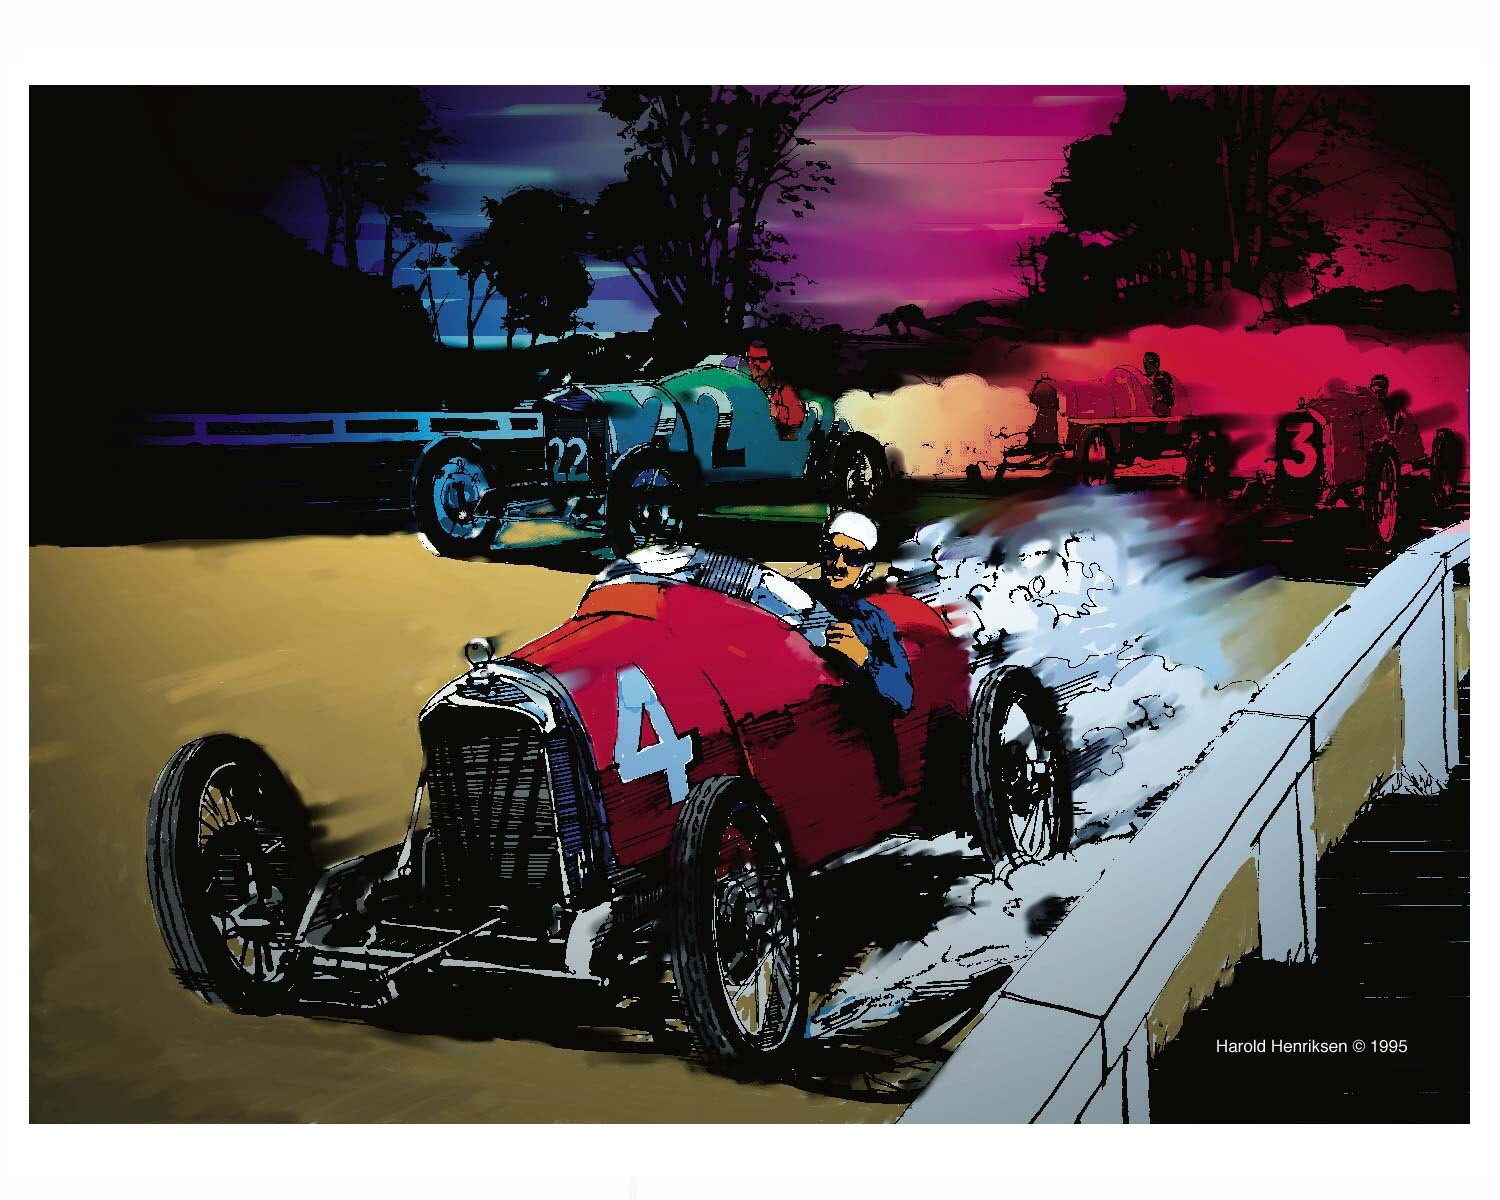 Vintage car race painting by Harold Henriksen.